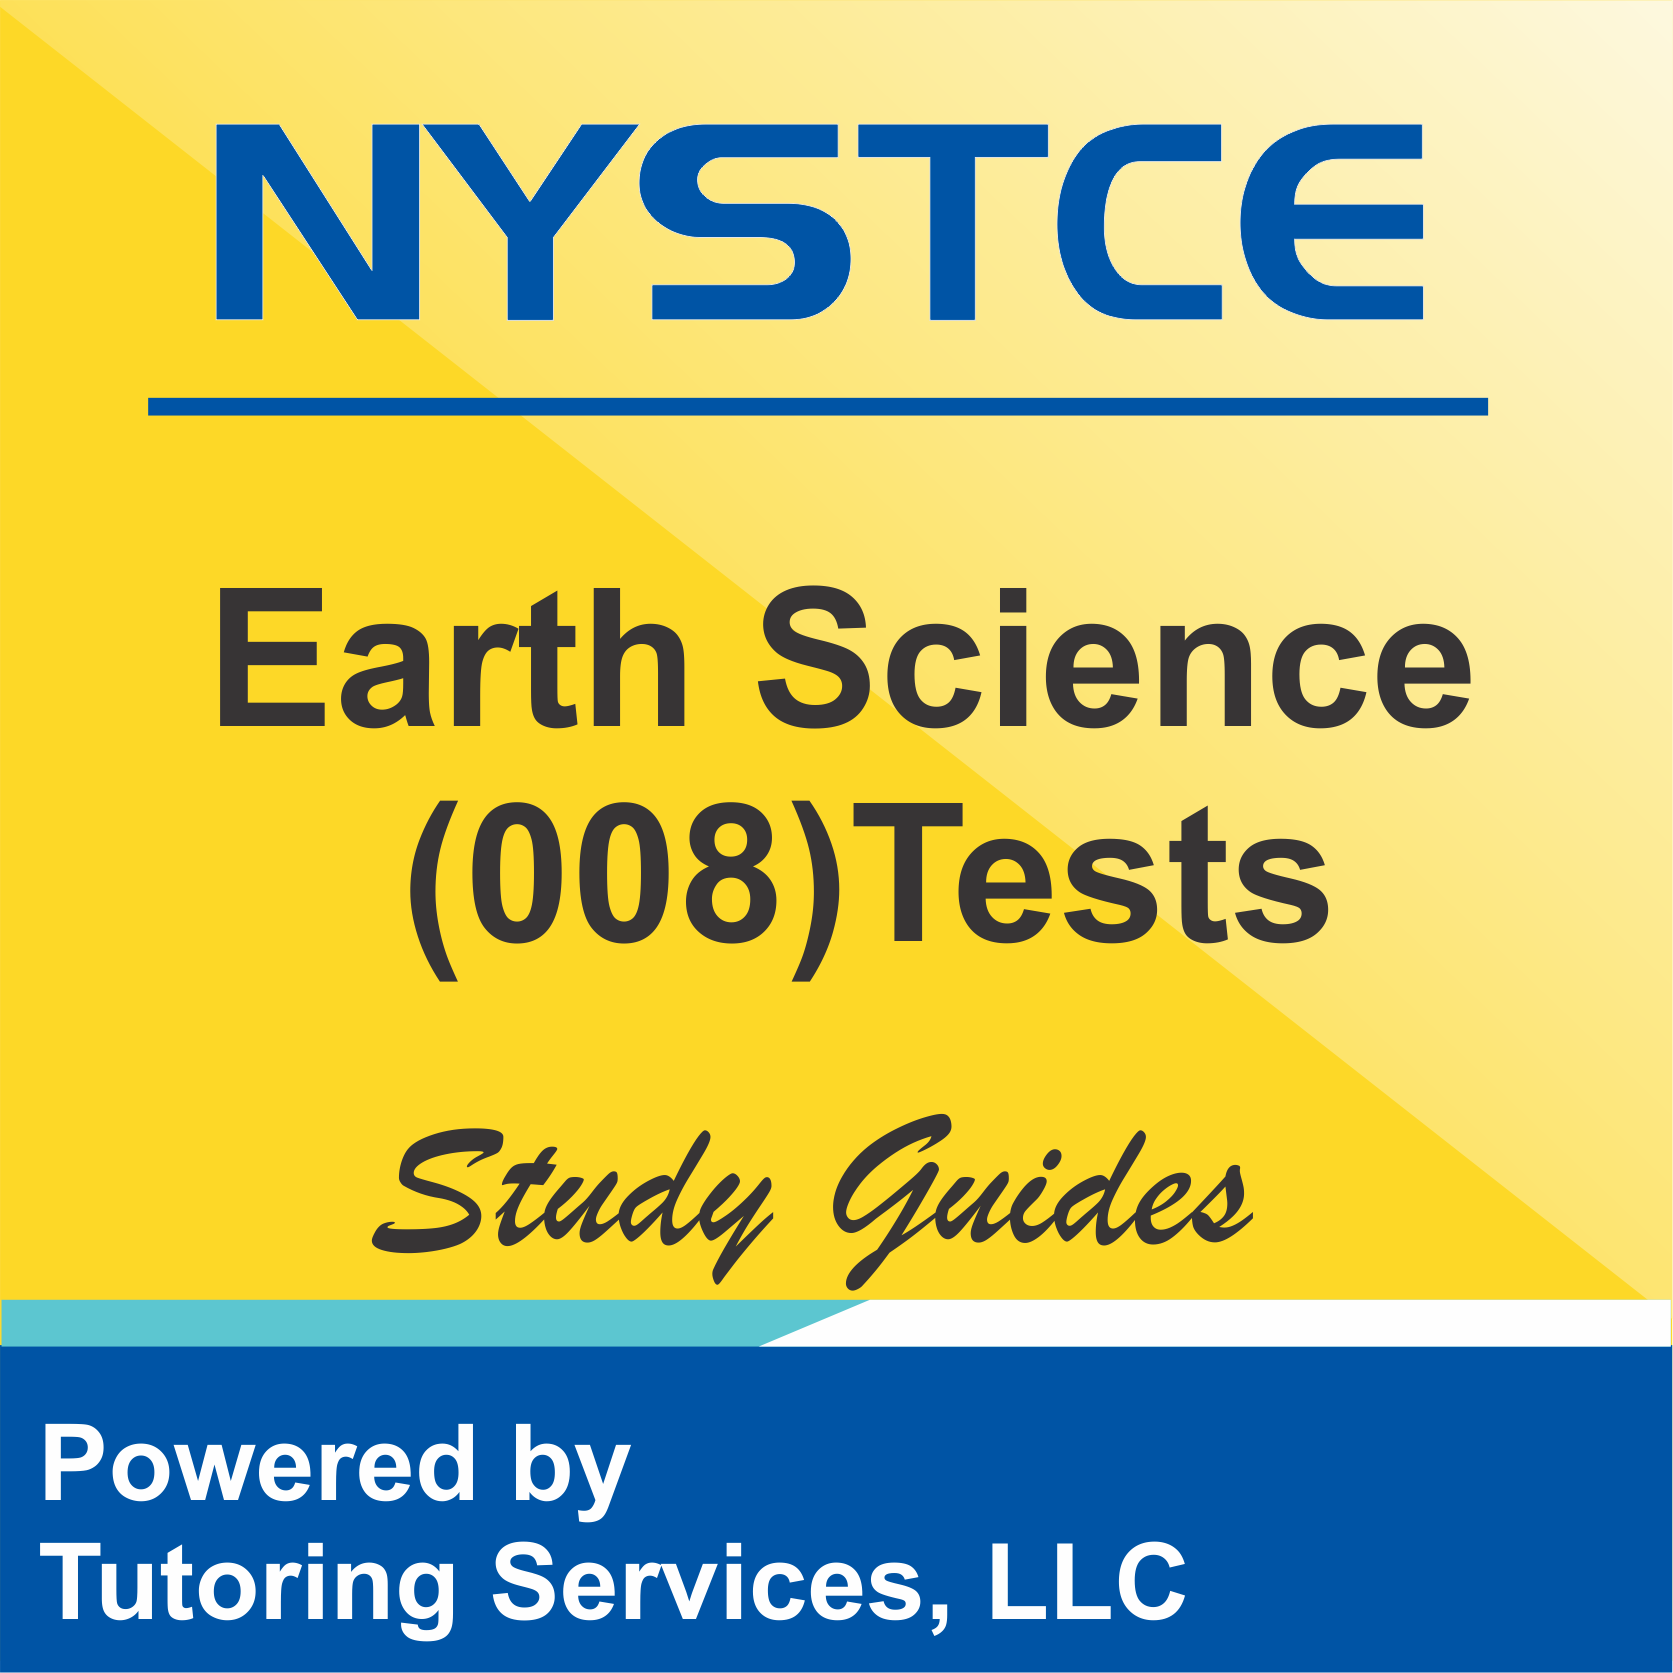 NYSTCE Teaching Certification Facts and Information for Earth Science 008